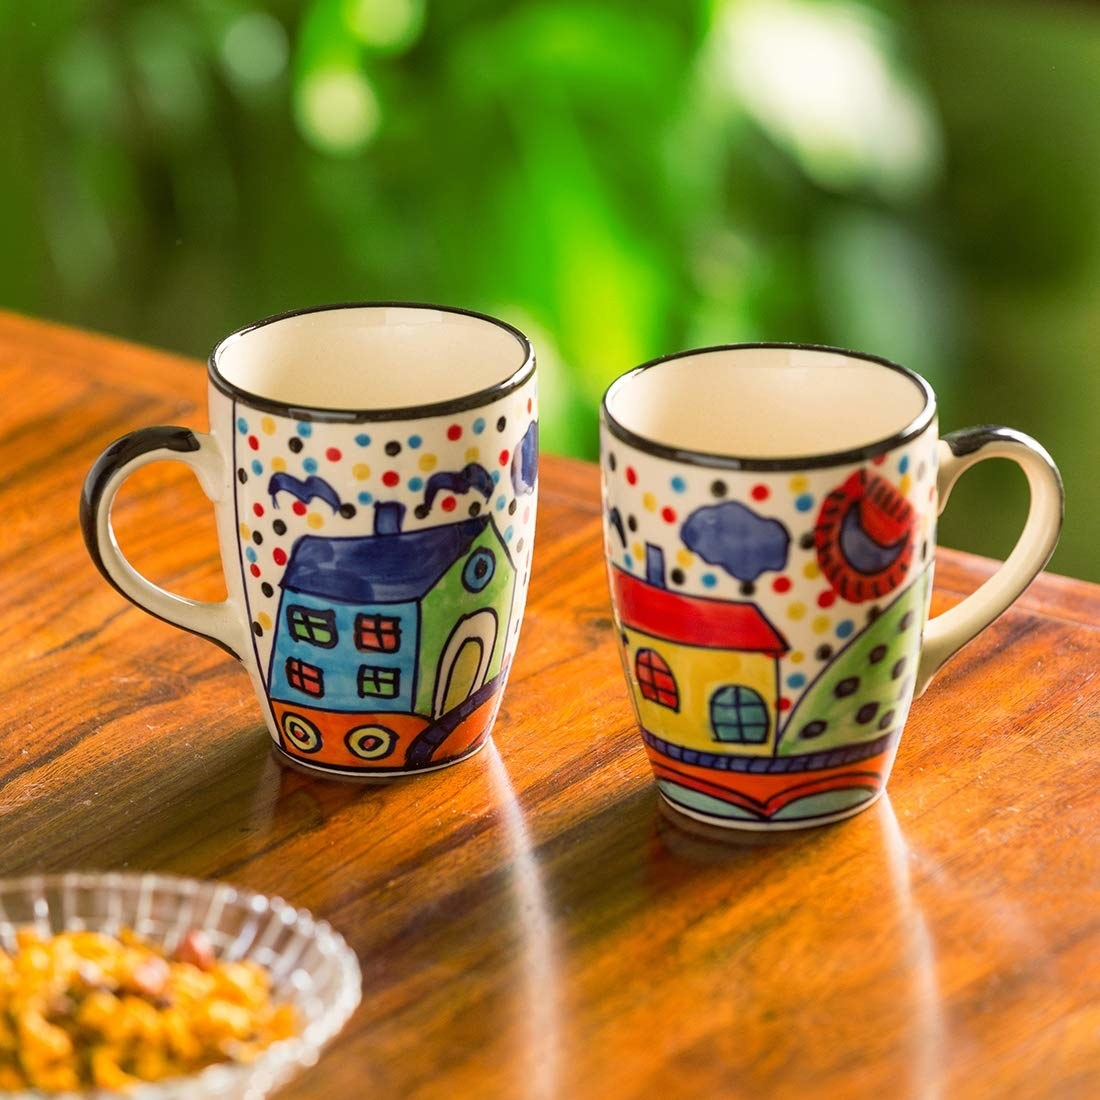 Two mugs with houses painted on them